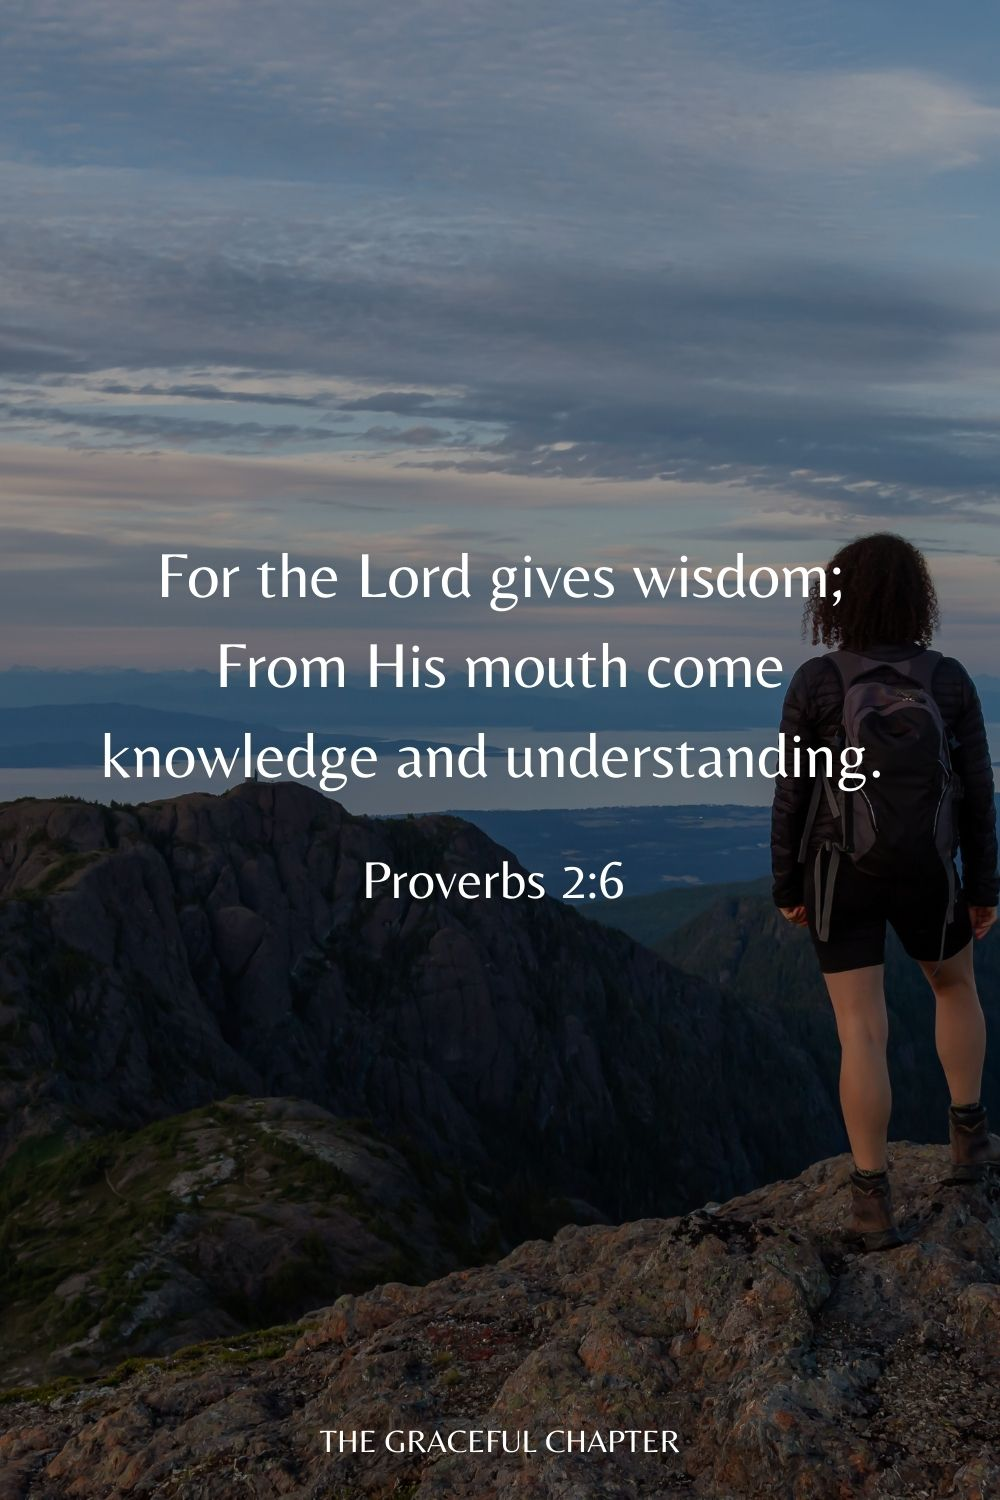 For the Lord gives wisdom; From His mouth come knowledge and understanding. Proverbs 2:6